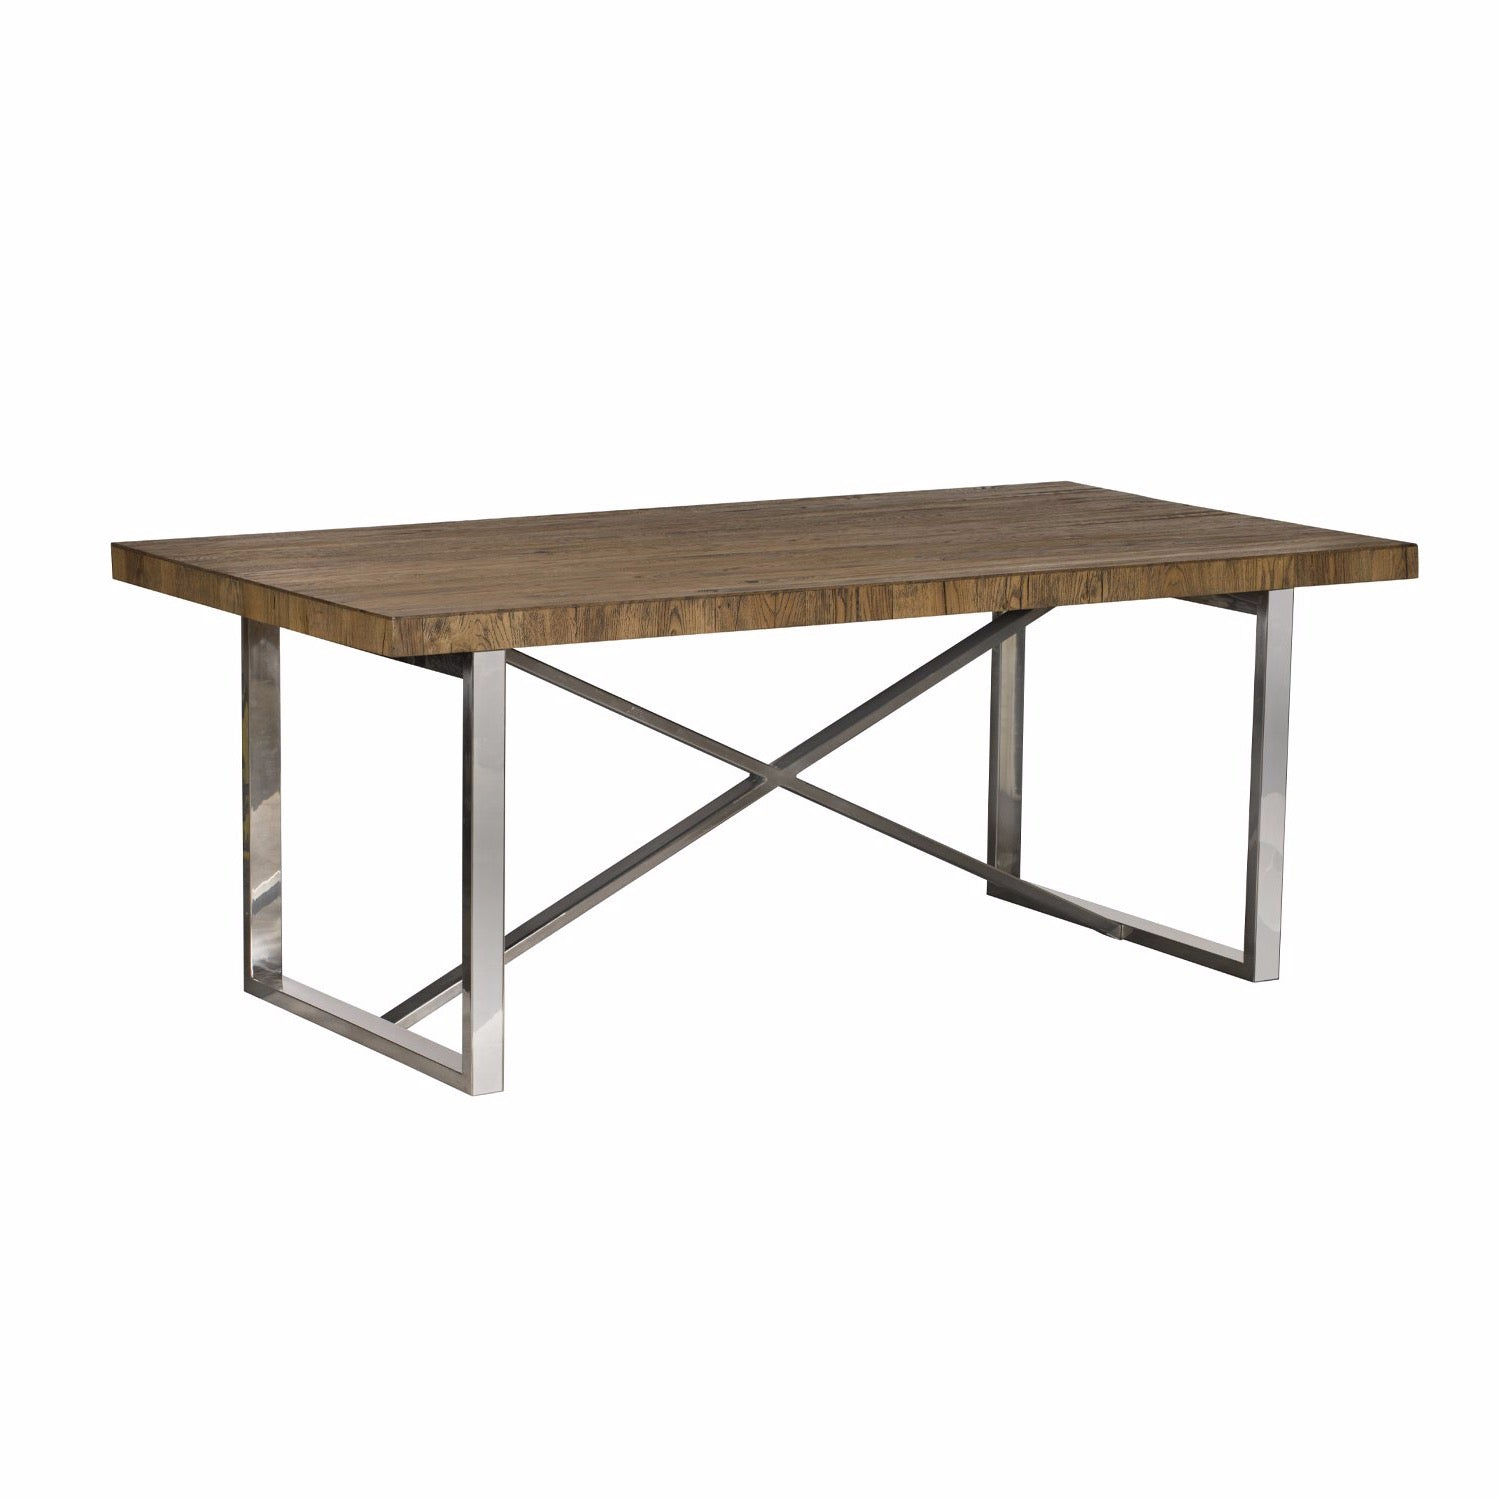 Primrose Hill Dining Table - 240cm Fixed